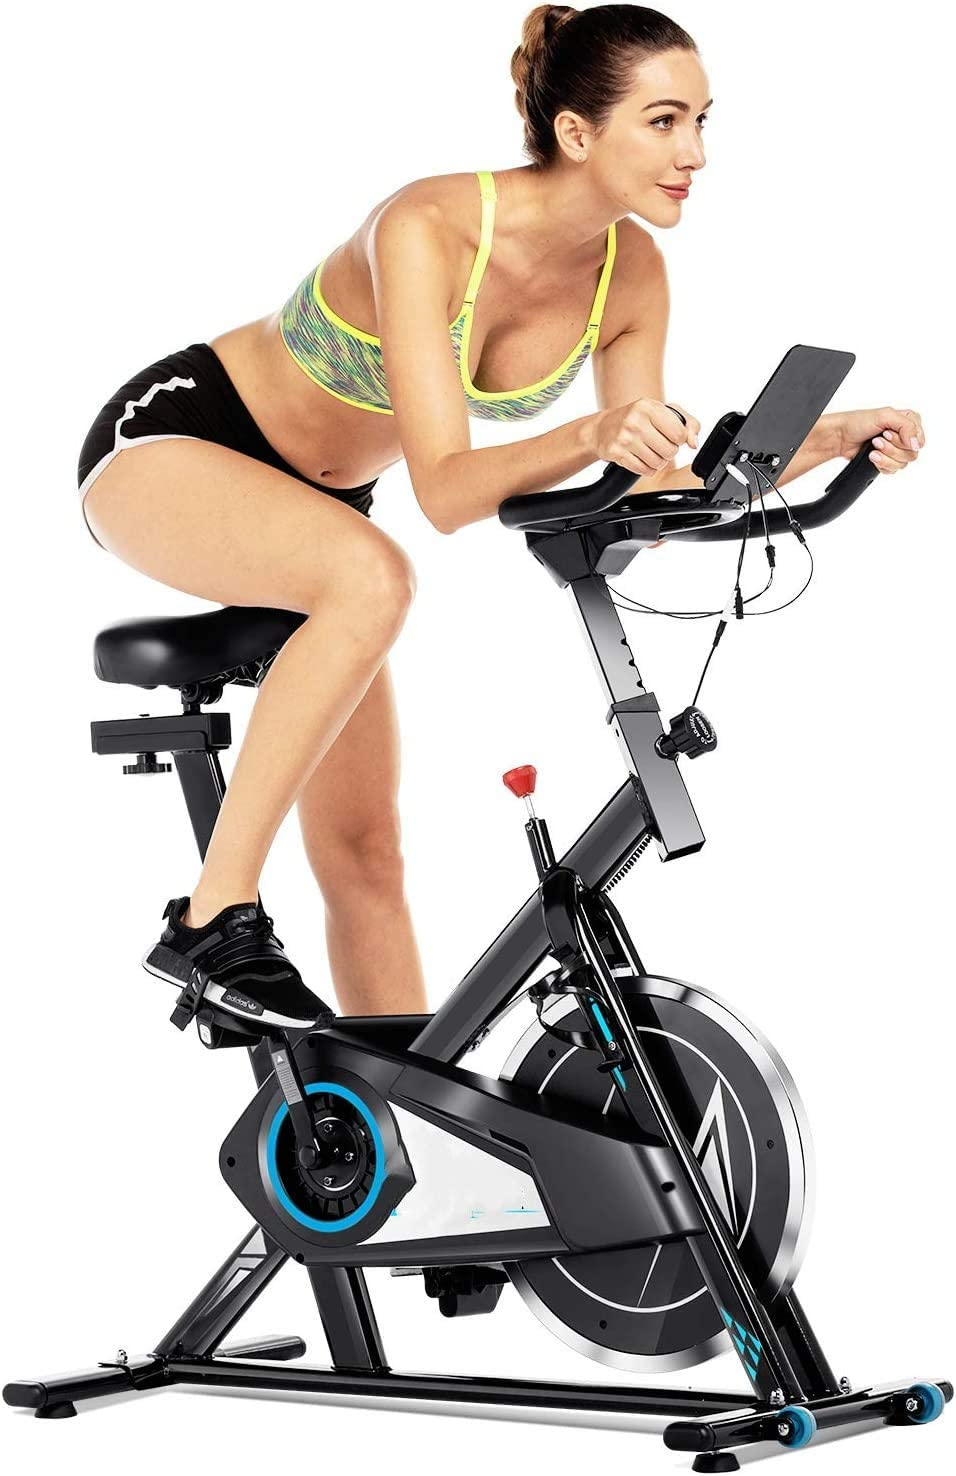 FUNMILY Indoor Cycling Bike Stationary, Silent Belt Drive Cycle Bike Exercise Bike with APP Control, Heart Rate, LCD Monitor, Adjustable Seat and Handlebars for Home Cardio Workout Training Black